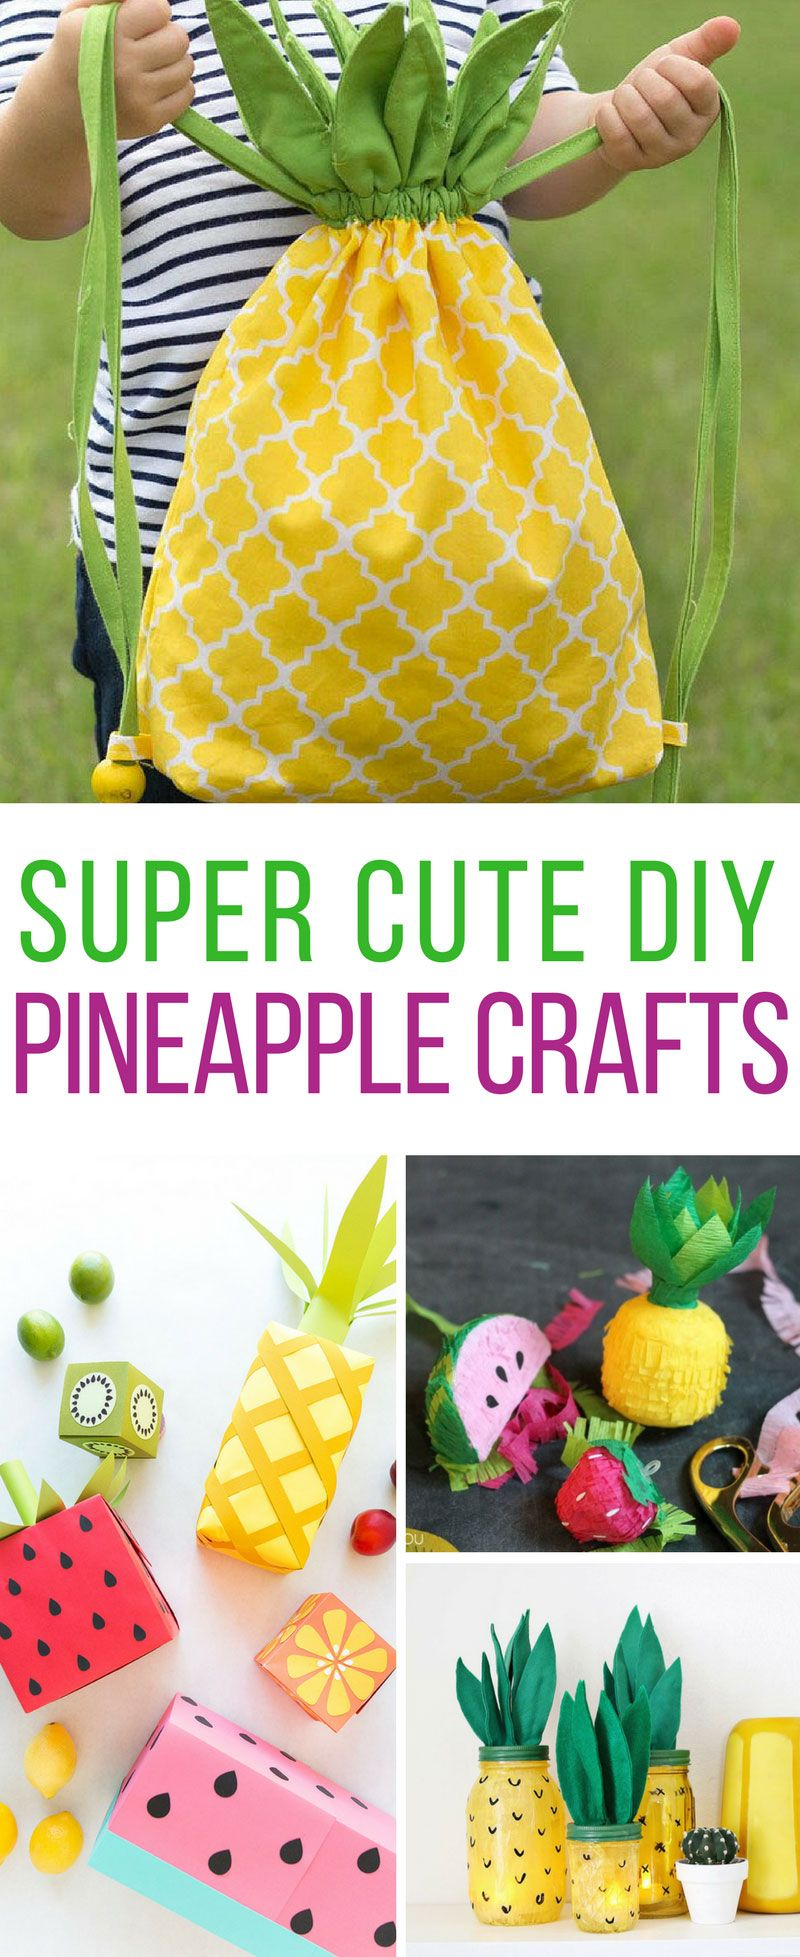 32 Stunning DIY Pineapple Crafts To Brighten Your Day